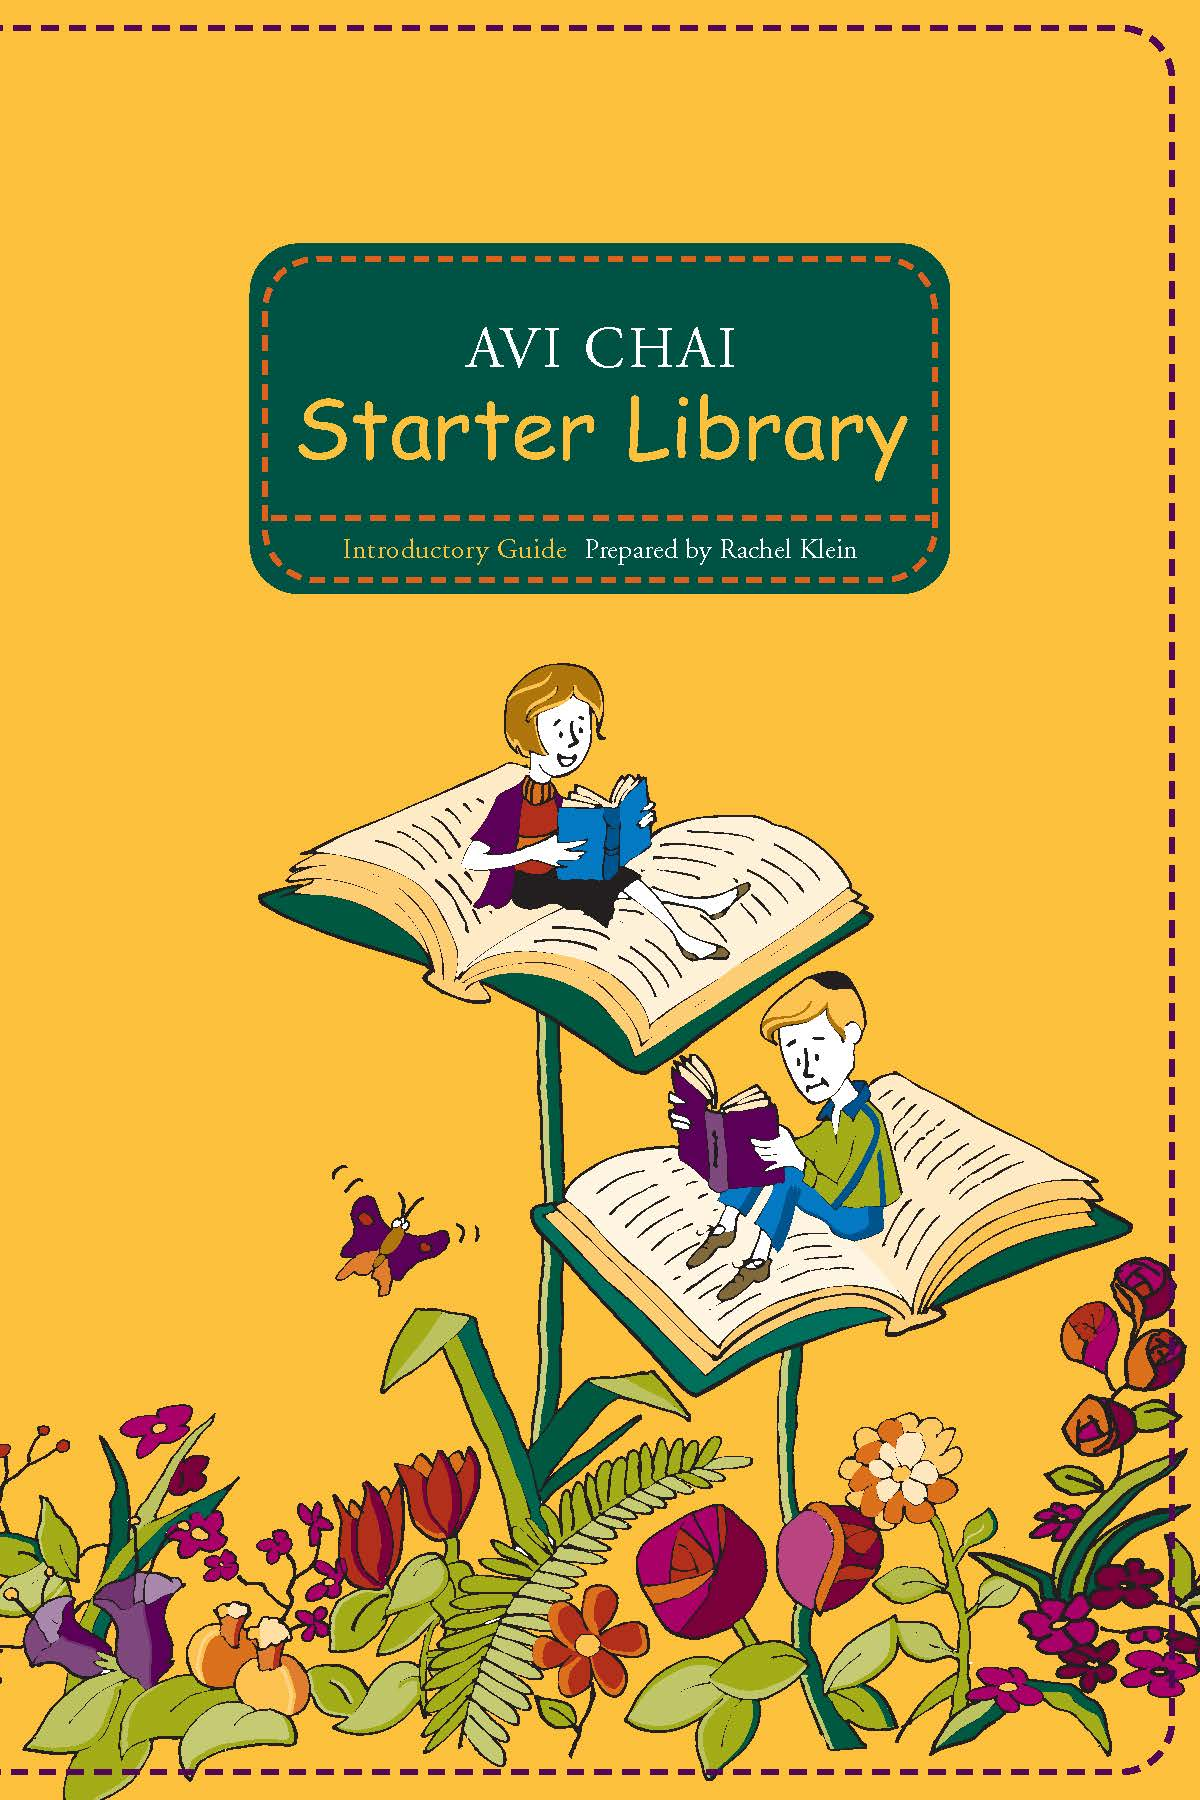 Starter Libraries Brochure